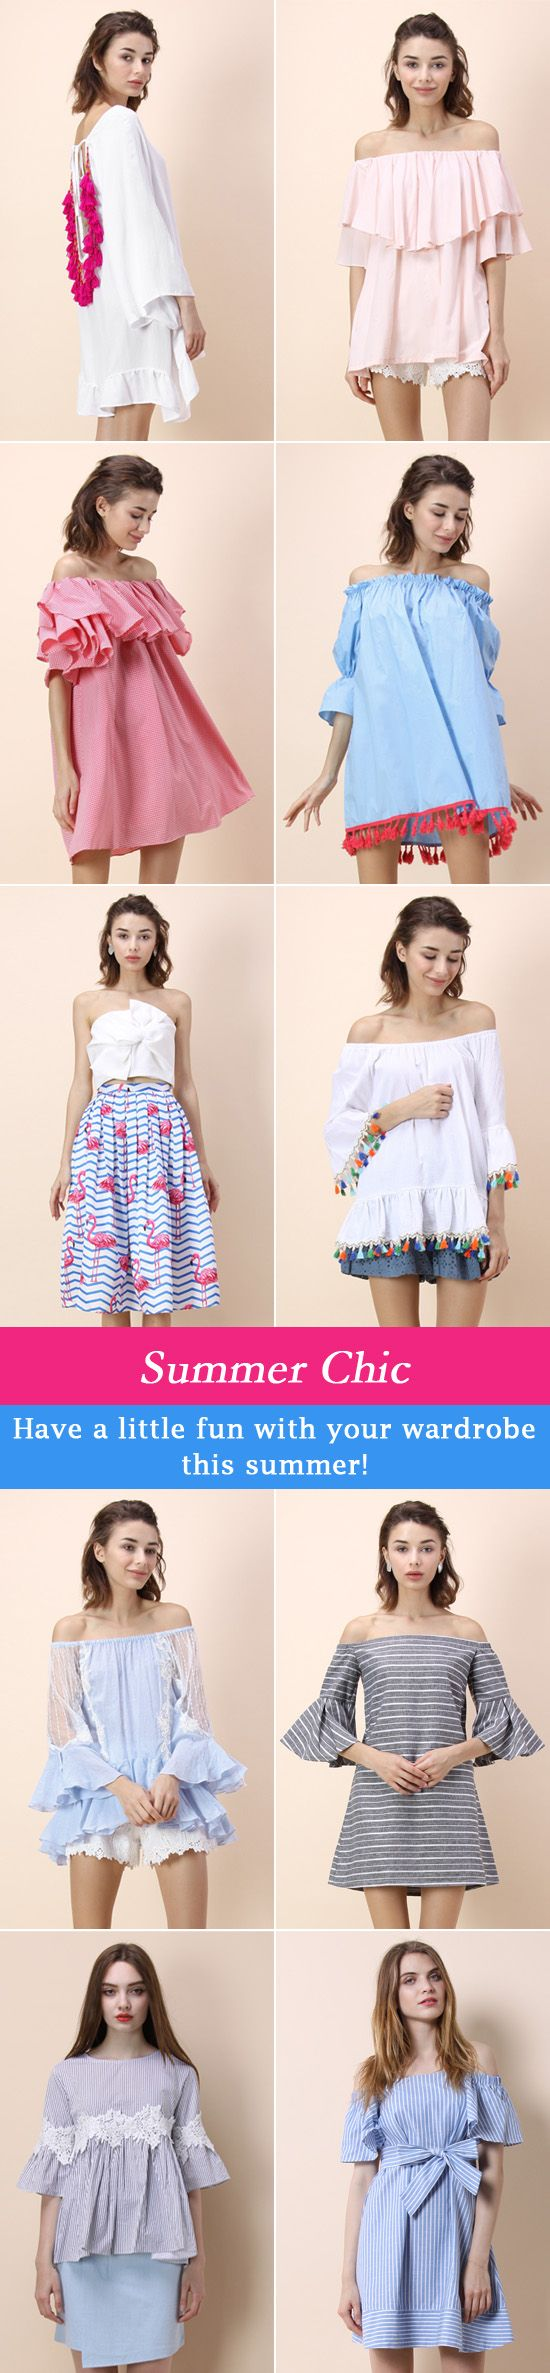 Summer Chic tops and dresses. Have a little fun with your wardrobe this summer!